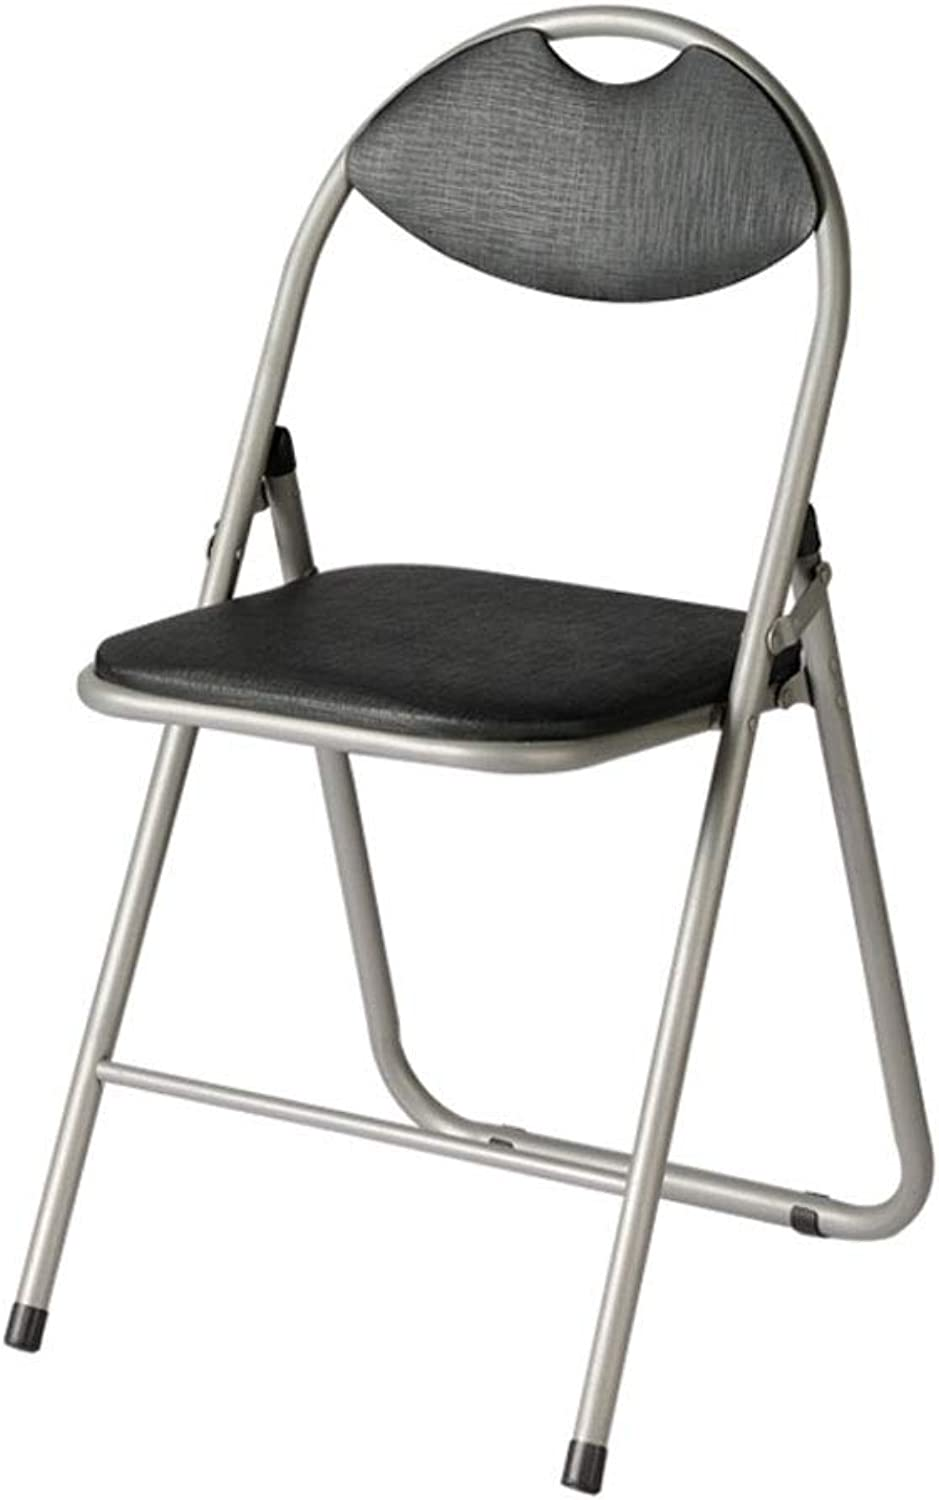 Folding Chair Cushion Fabric Thickening Seat Metal Frame Office Conference Chair